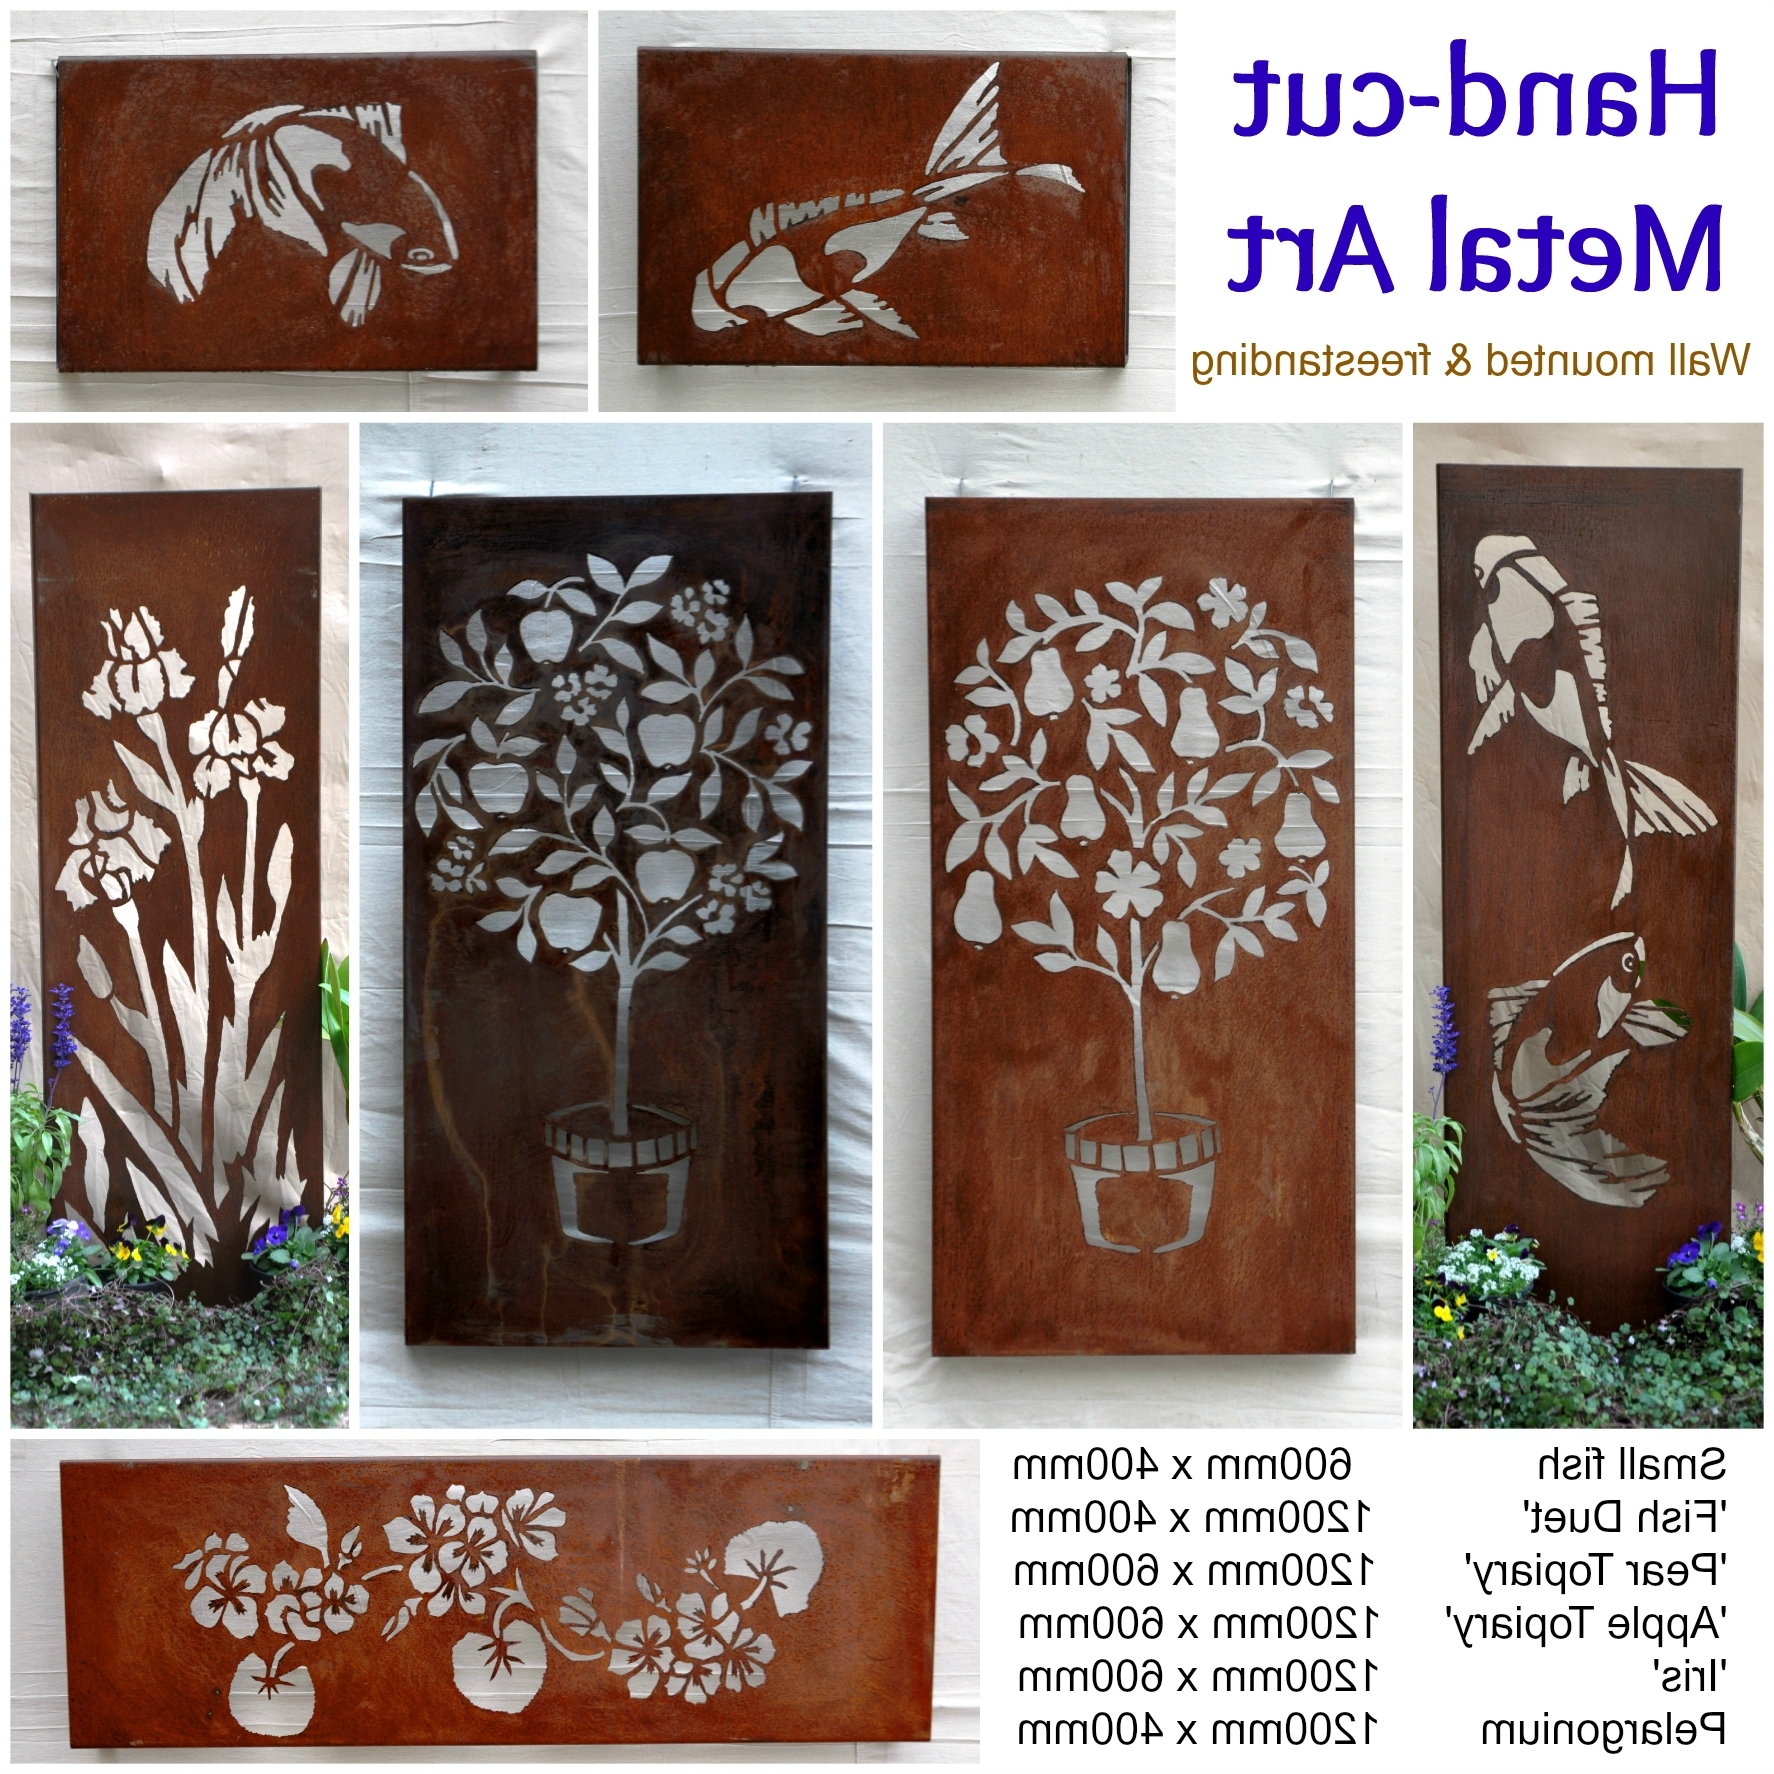 Decorative Outdoor Metal Wall Art Within Preferred Wall Art Design Ideas: Australian Steel Metal Garden Wall Art (View 7 of 15)